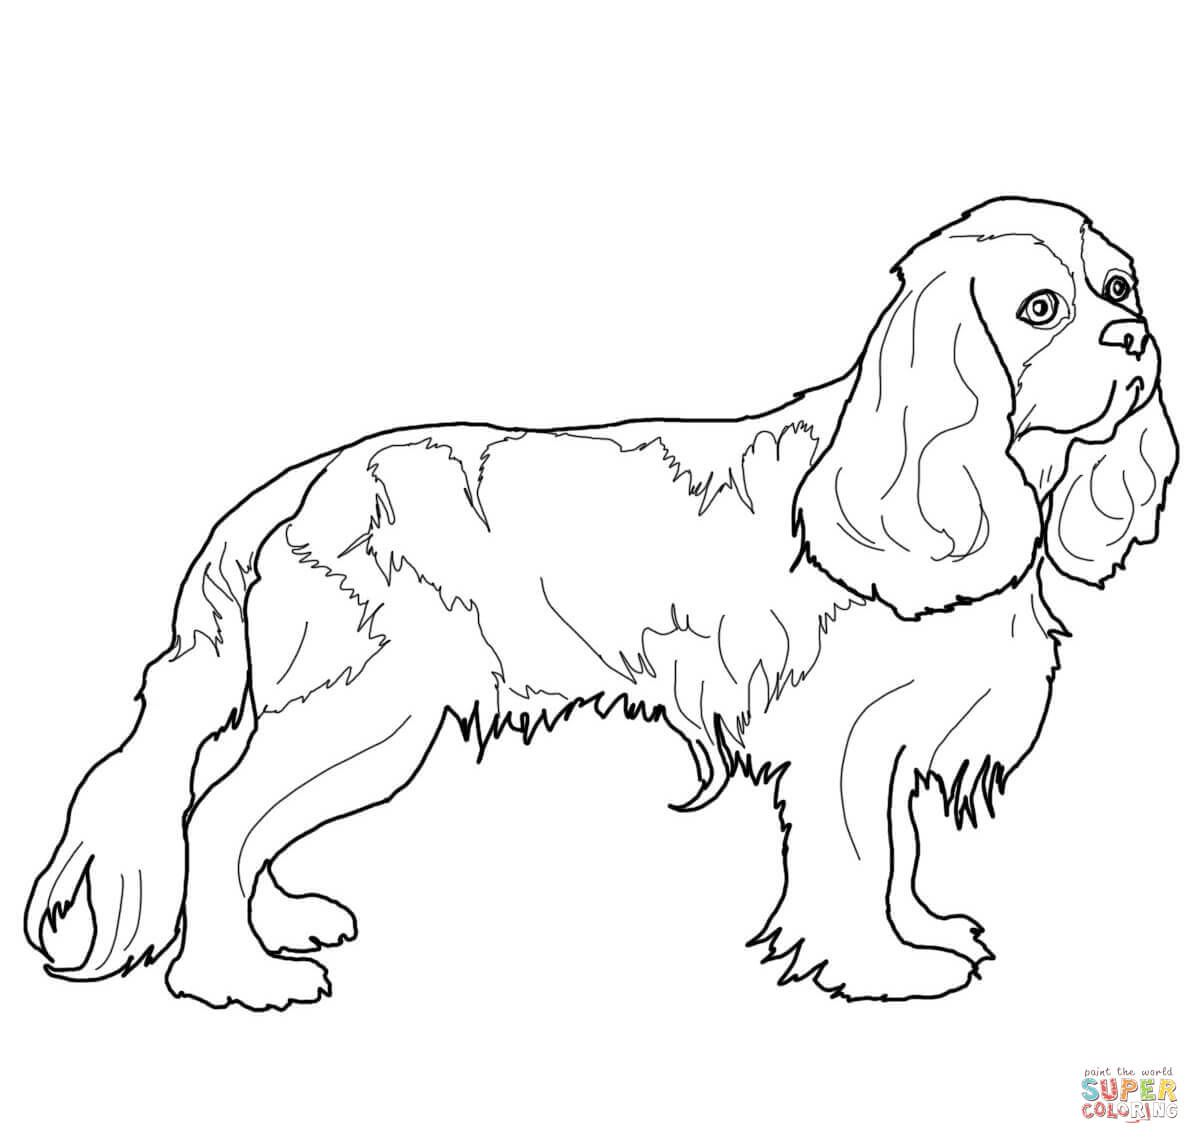 1200x1144 Cocker Spaniel Coloring Page Free Printable Coloring Pages